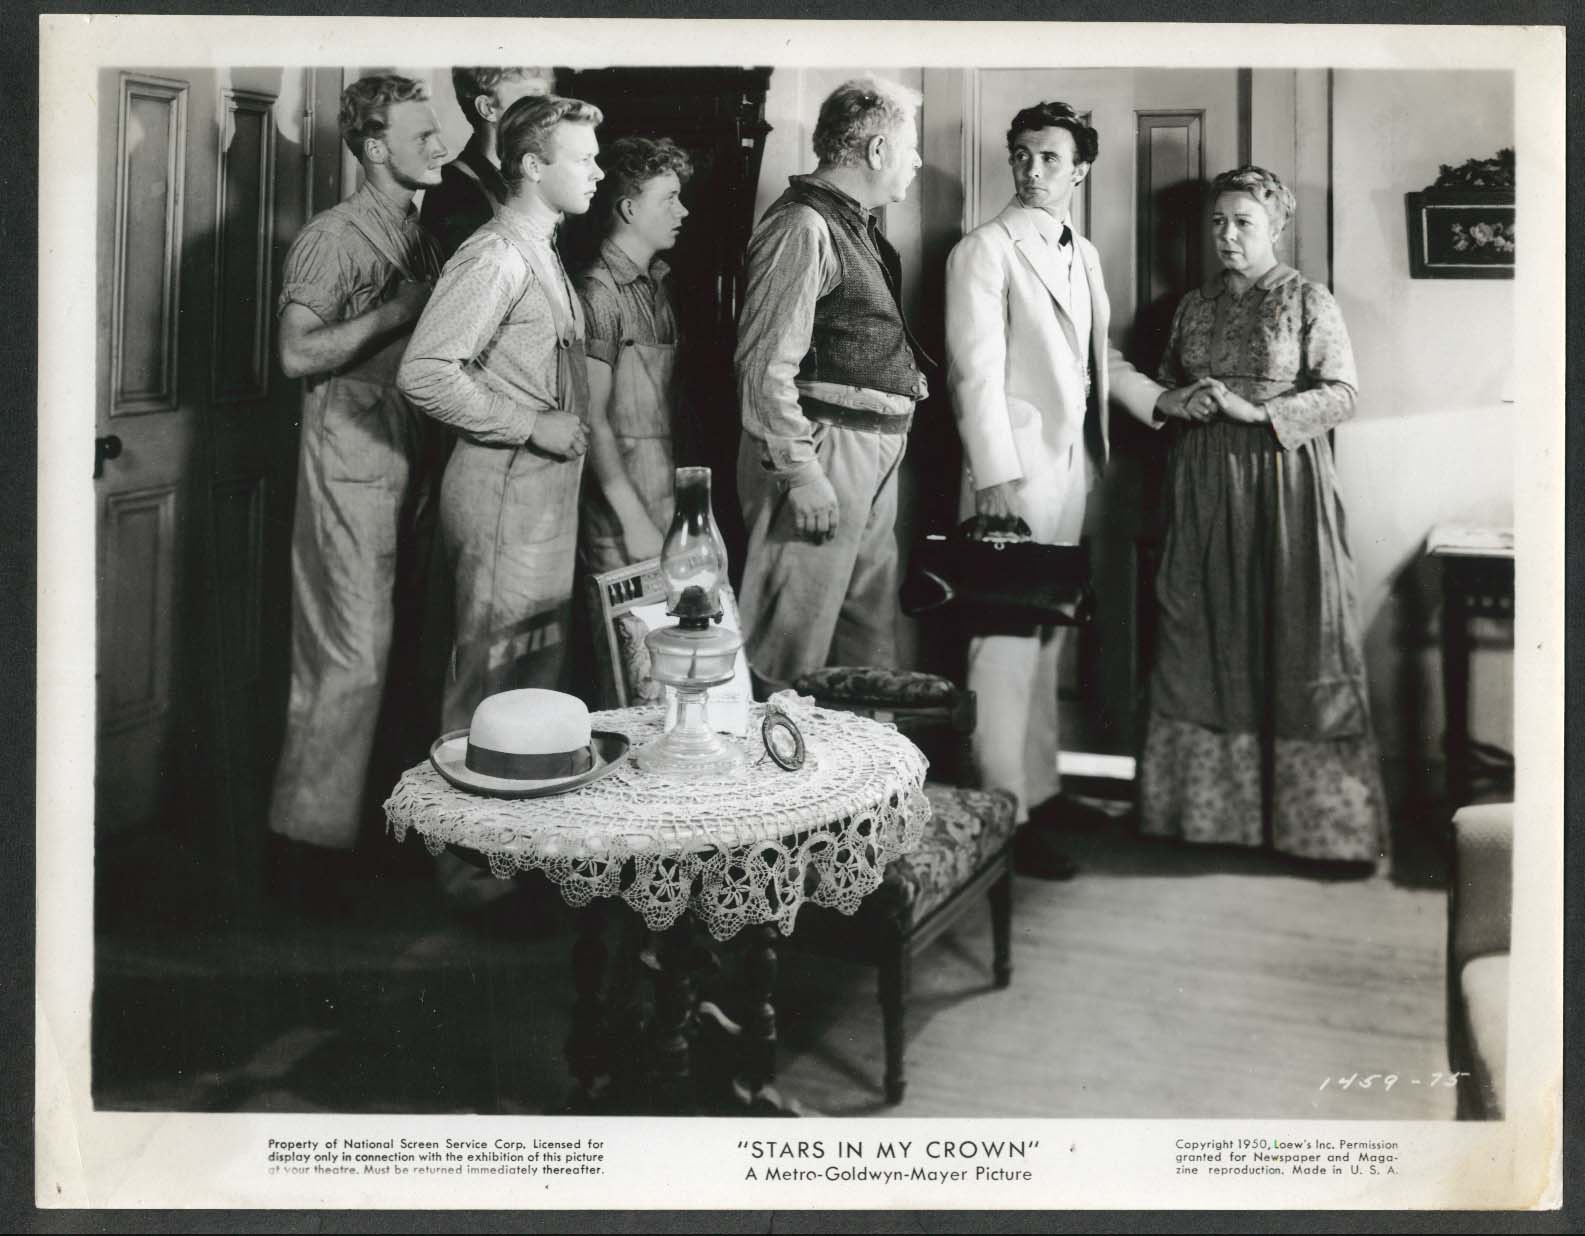 Image for Dean Stockwell Alan Hale James Mitchell Stars in My Crown 8x10 photograph 1950